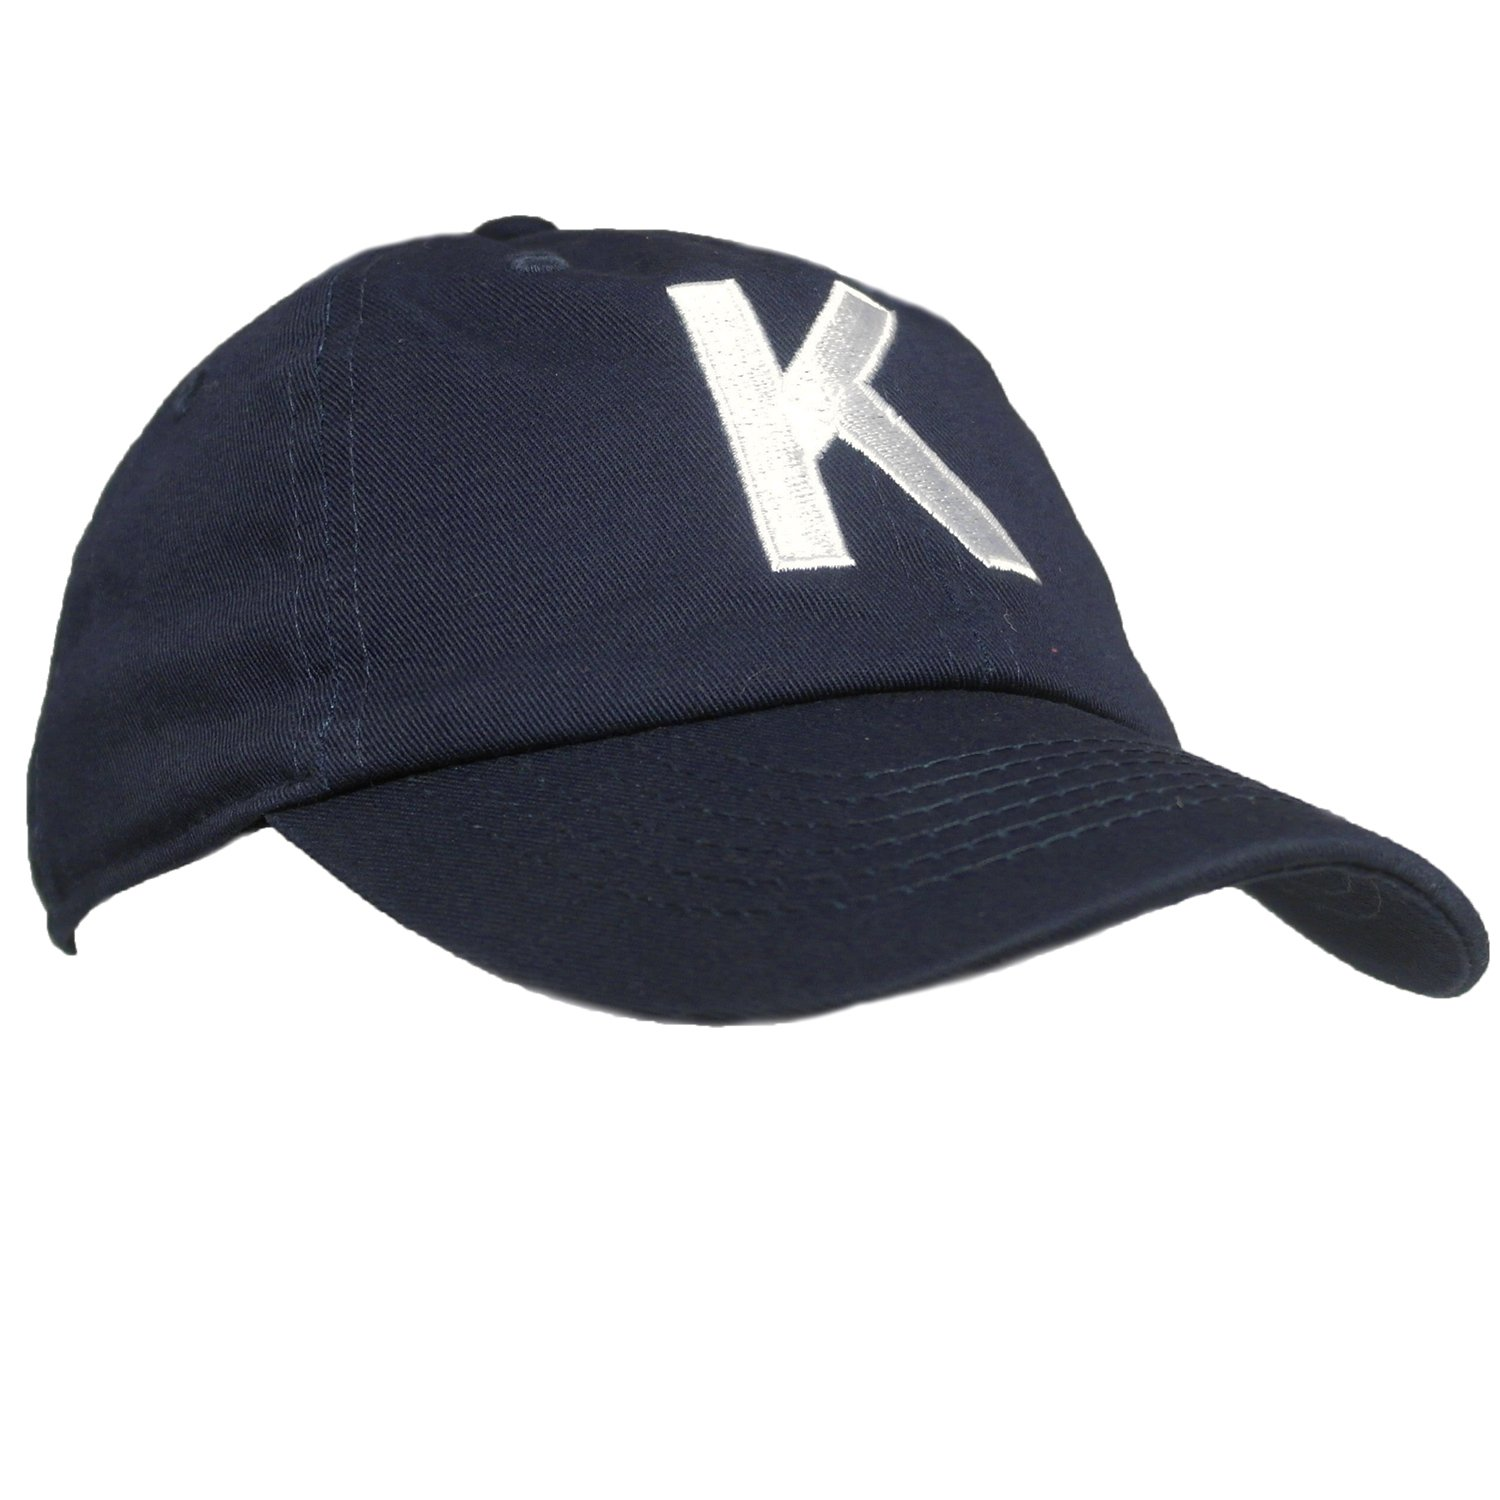 Tiny Expressions Toddler Boys' and Girls' Navy Embroidered Initial Baseball Hat Monogrammed Cap (K, 2-6yrs)